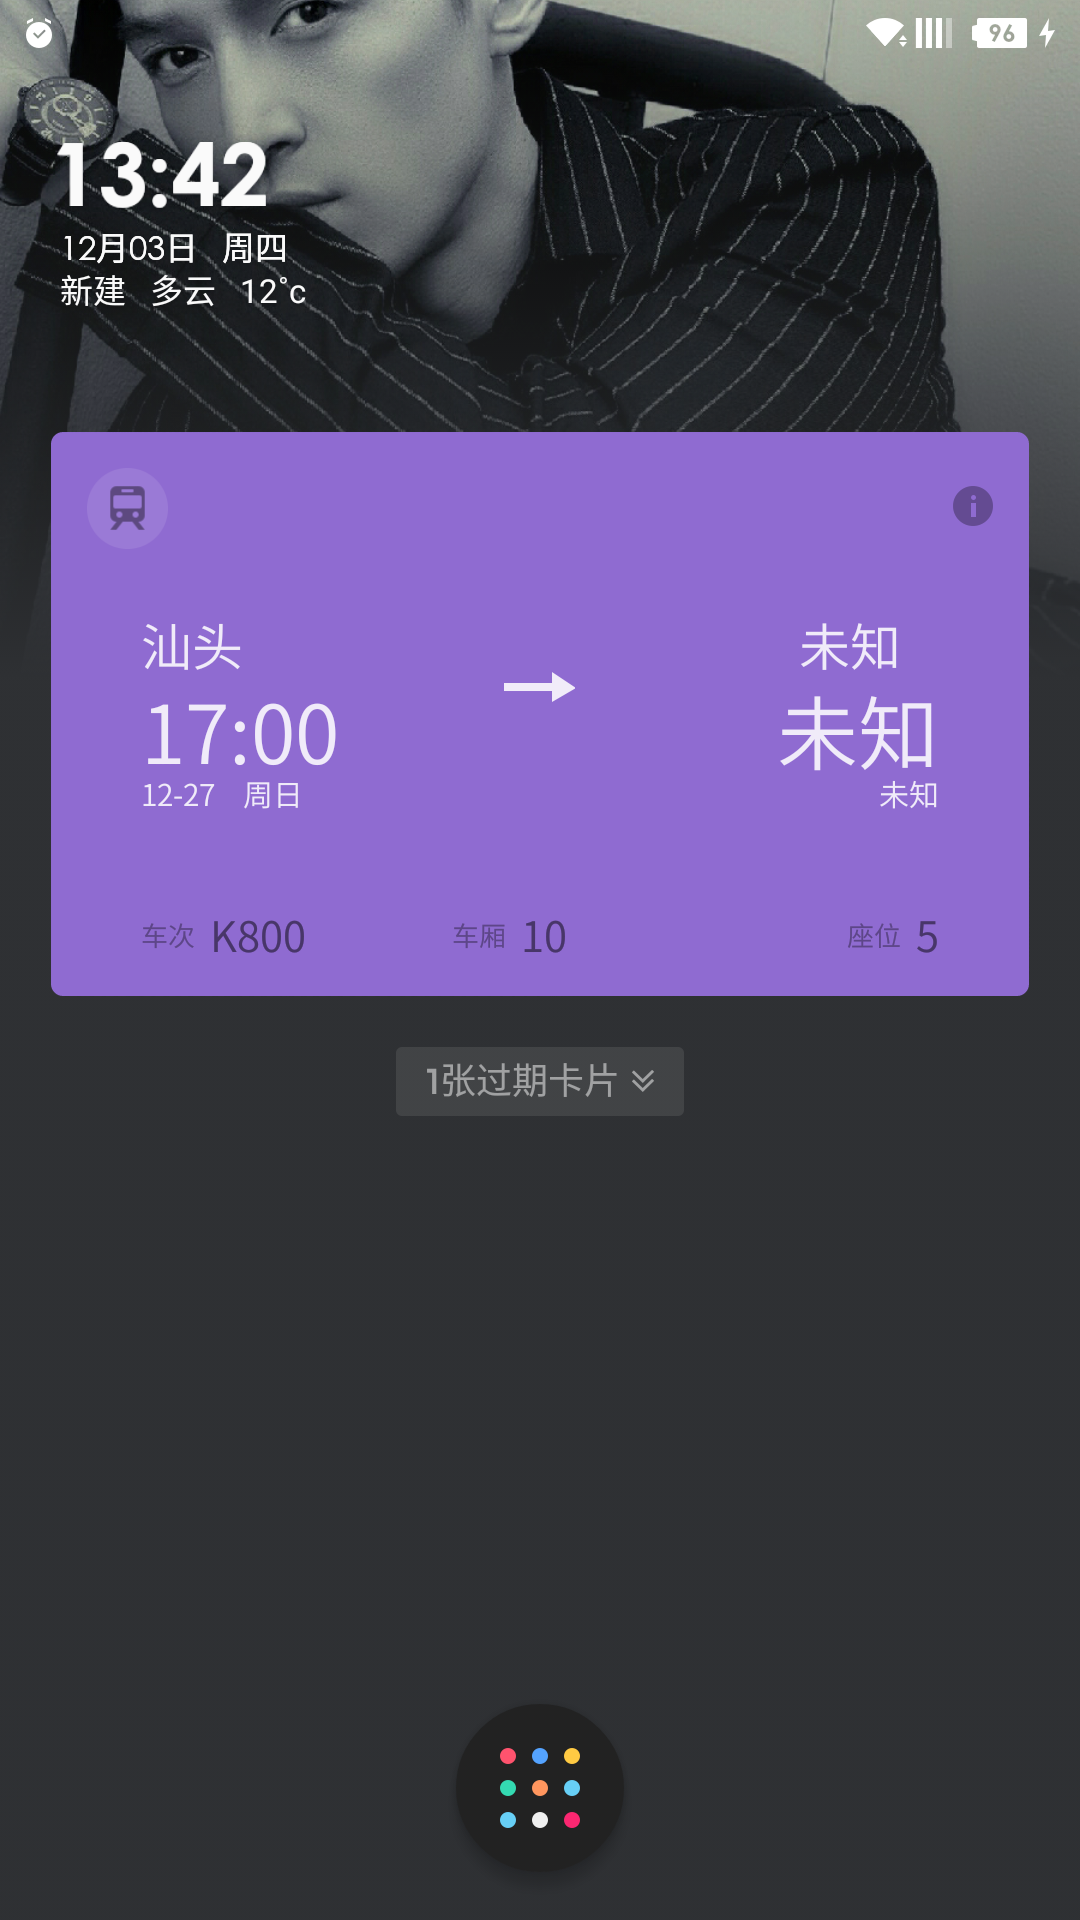 Screenshot_2015-12-03-13-42-05.png